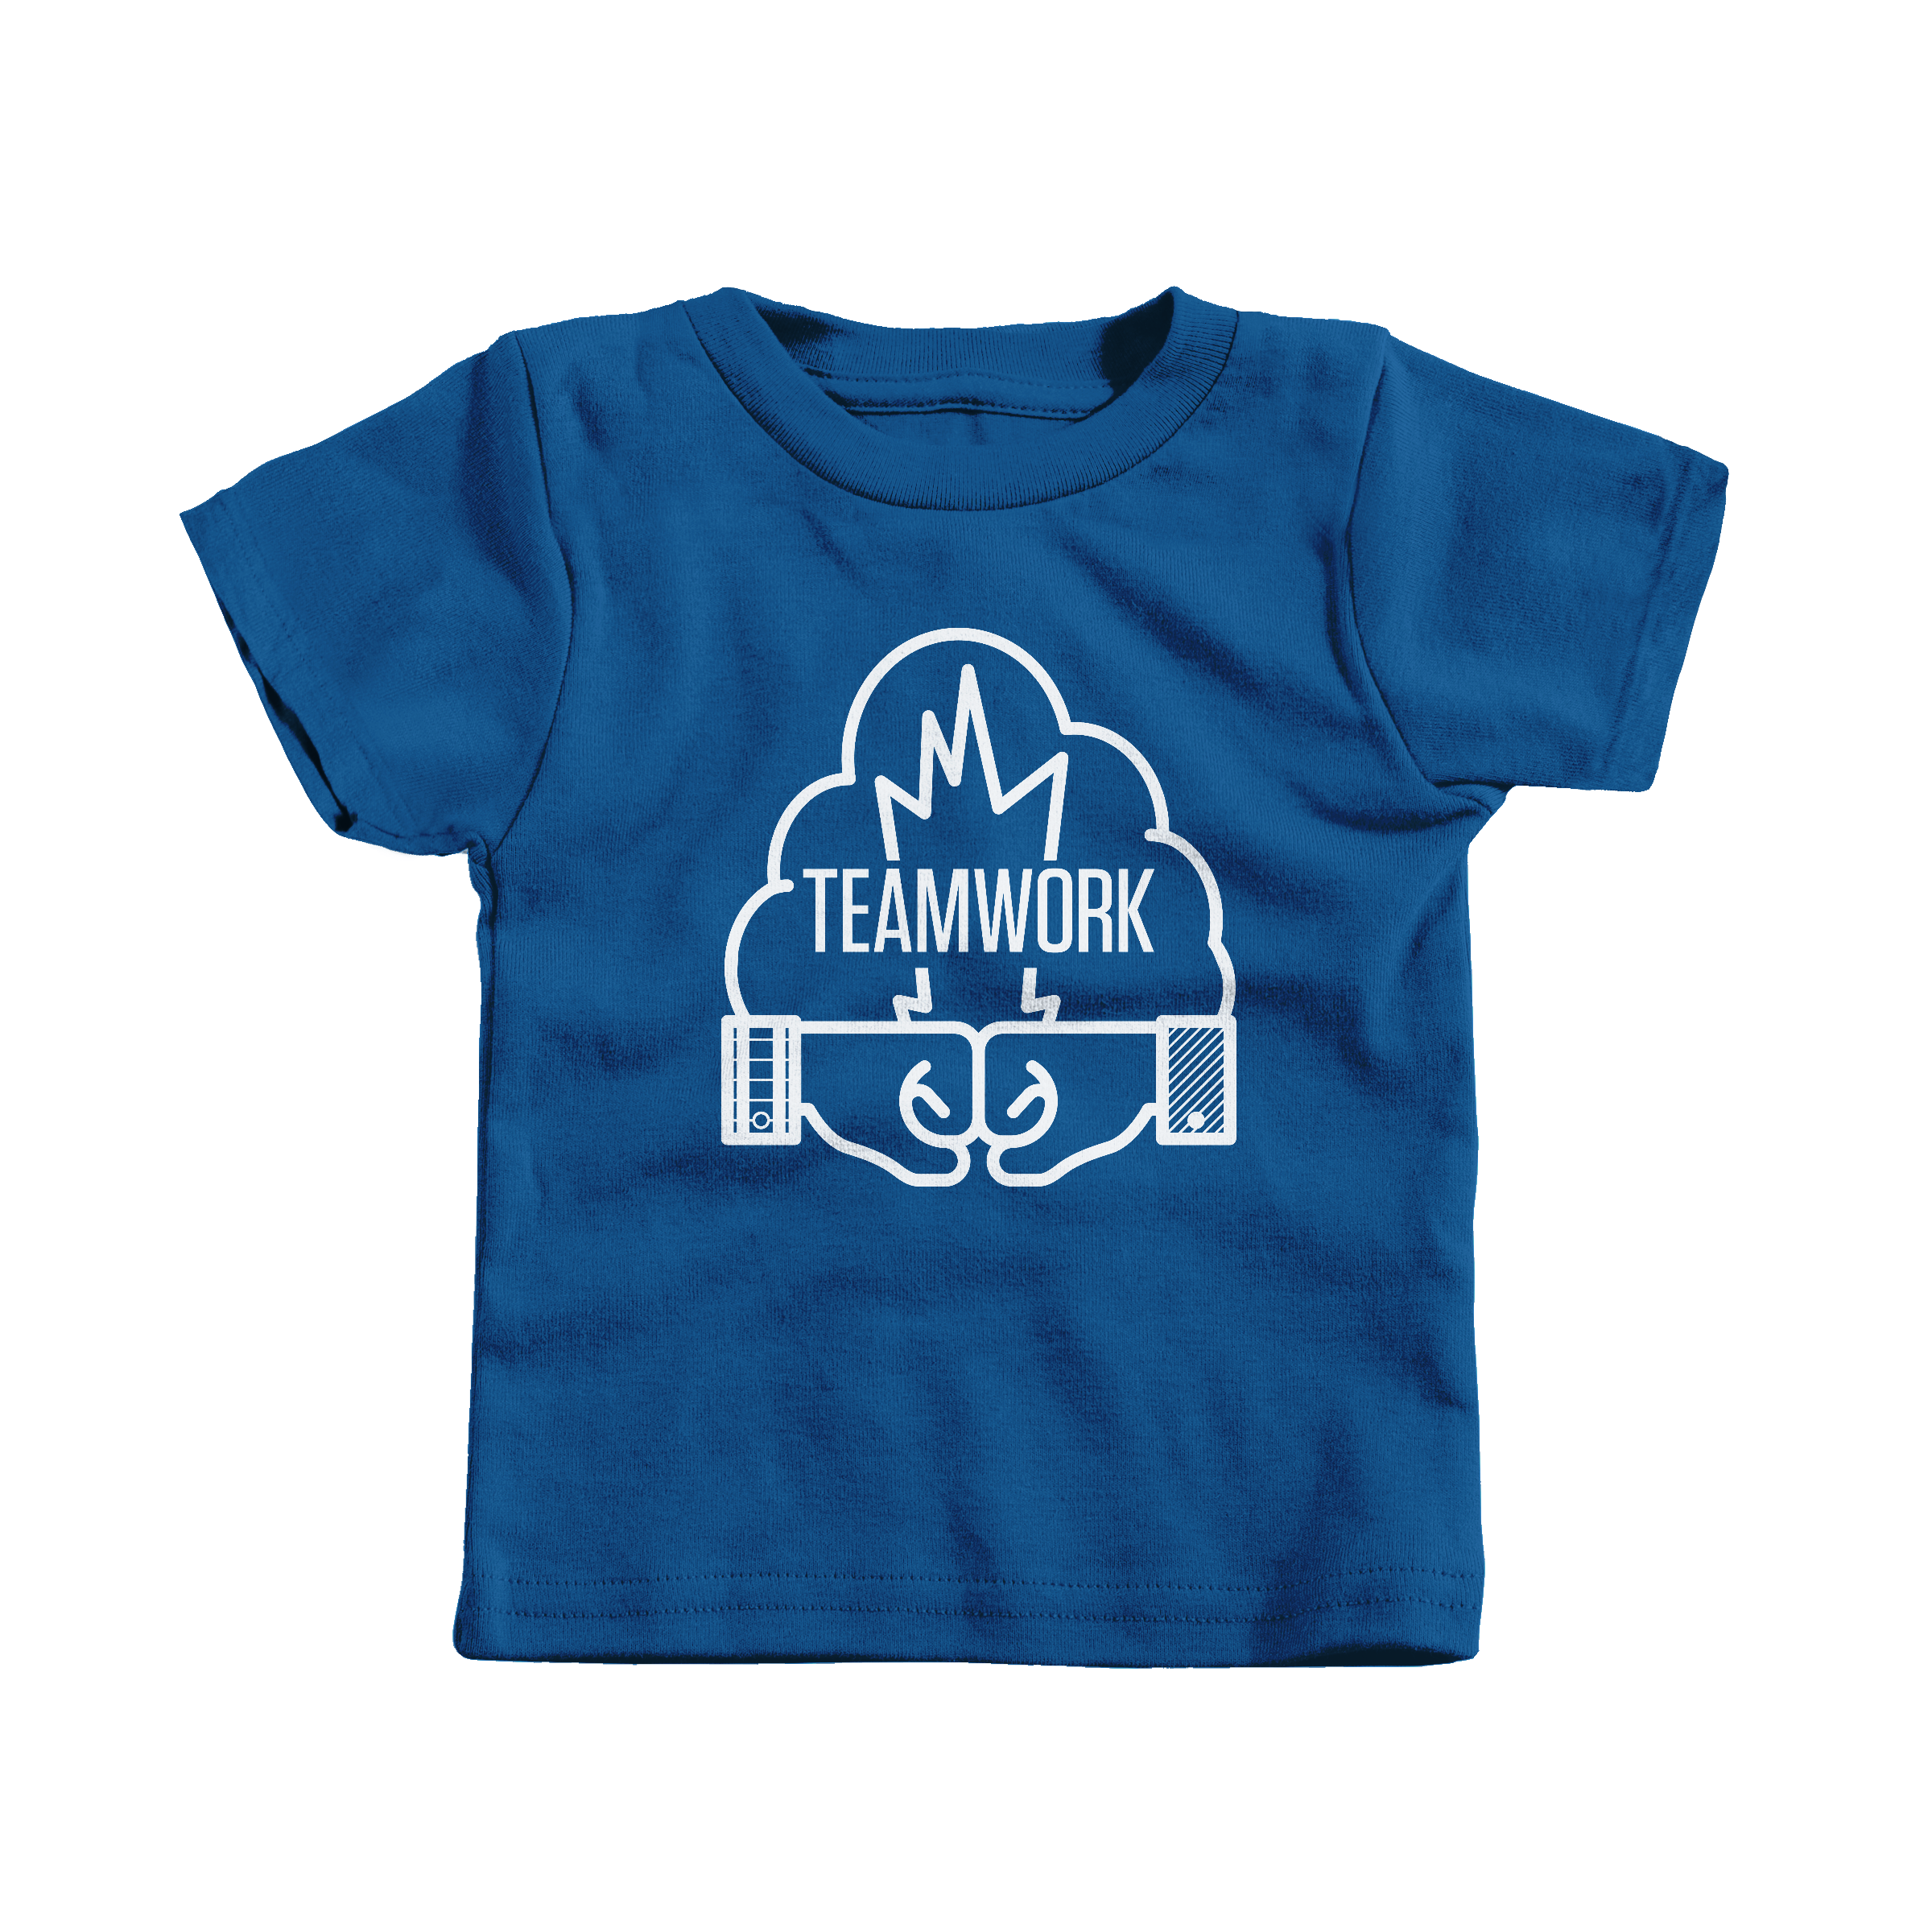 TEAMWORK Royal (T-Shirt)